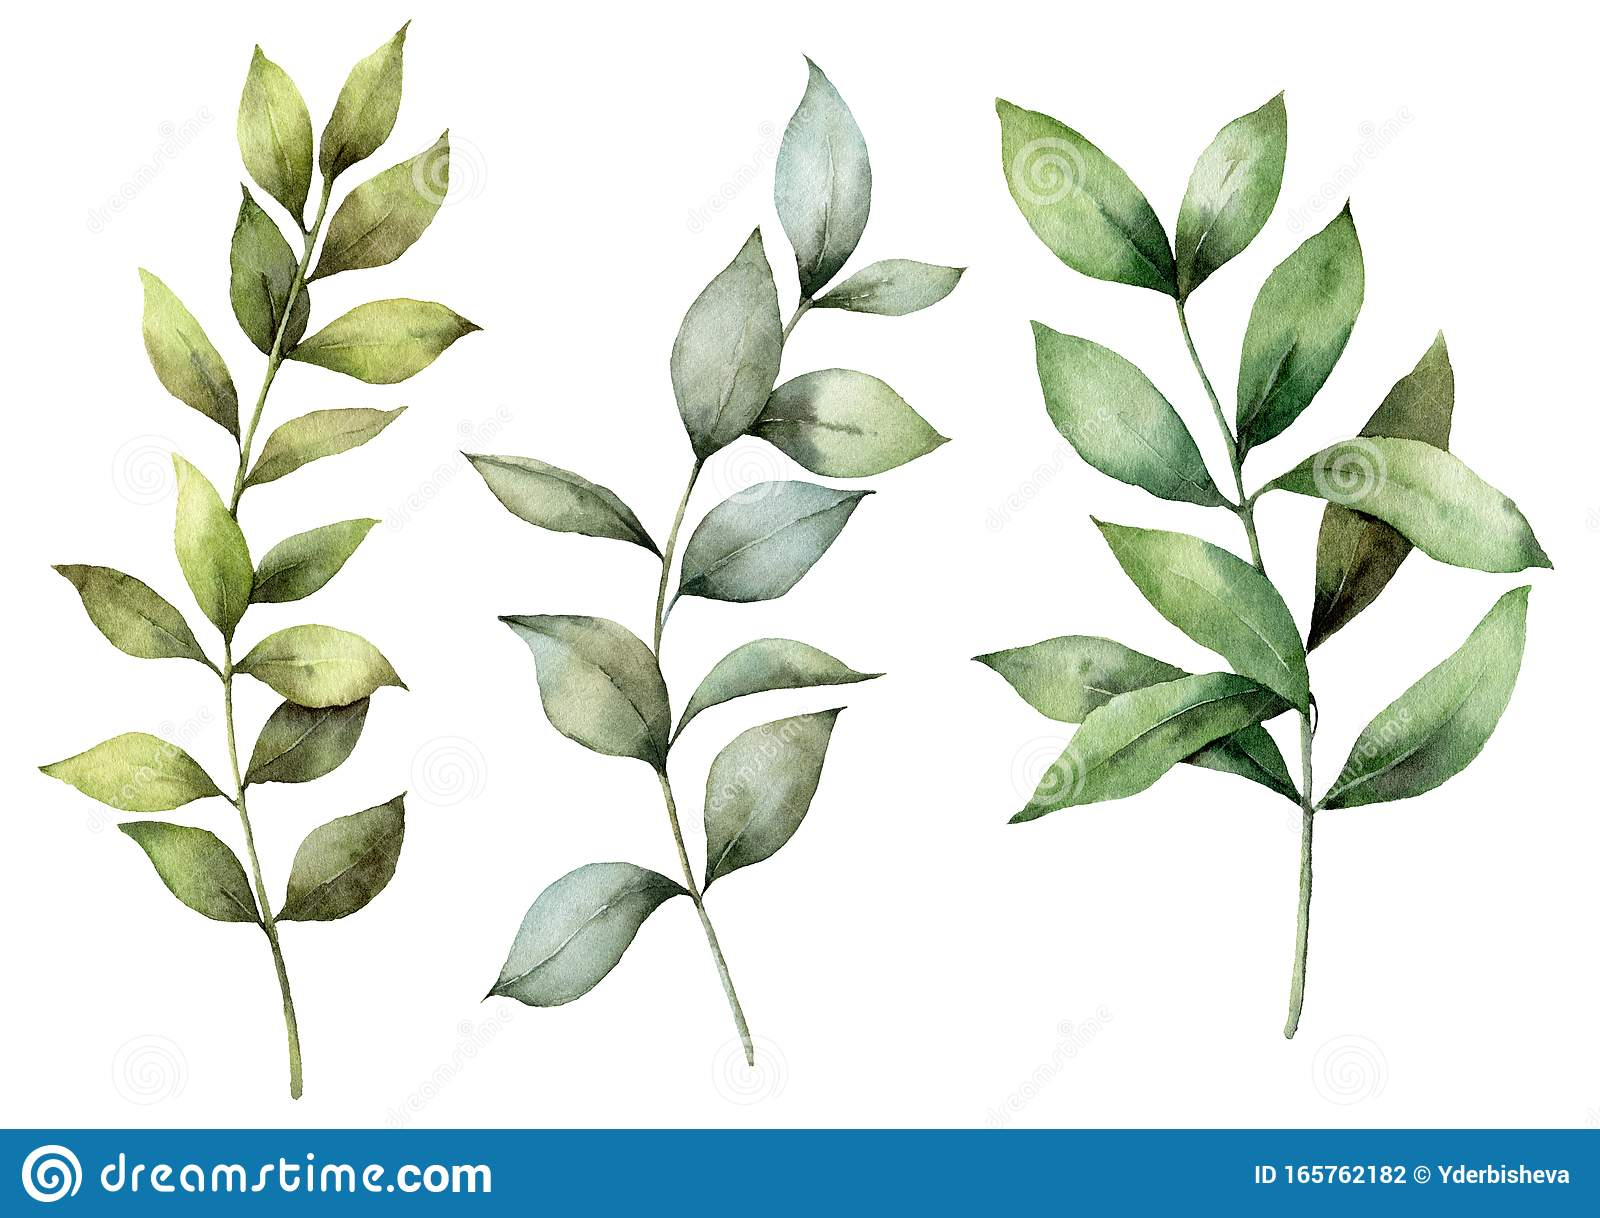 Watercolor Spring Branches Set For Easter Hand Painted Eucalyptus Thick Branch And Leaves Isolated On White Background Stock Illustration Illustration Of Greenery Delicate 165762182